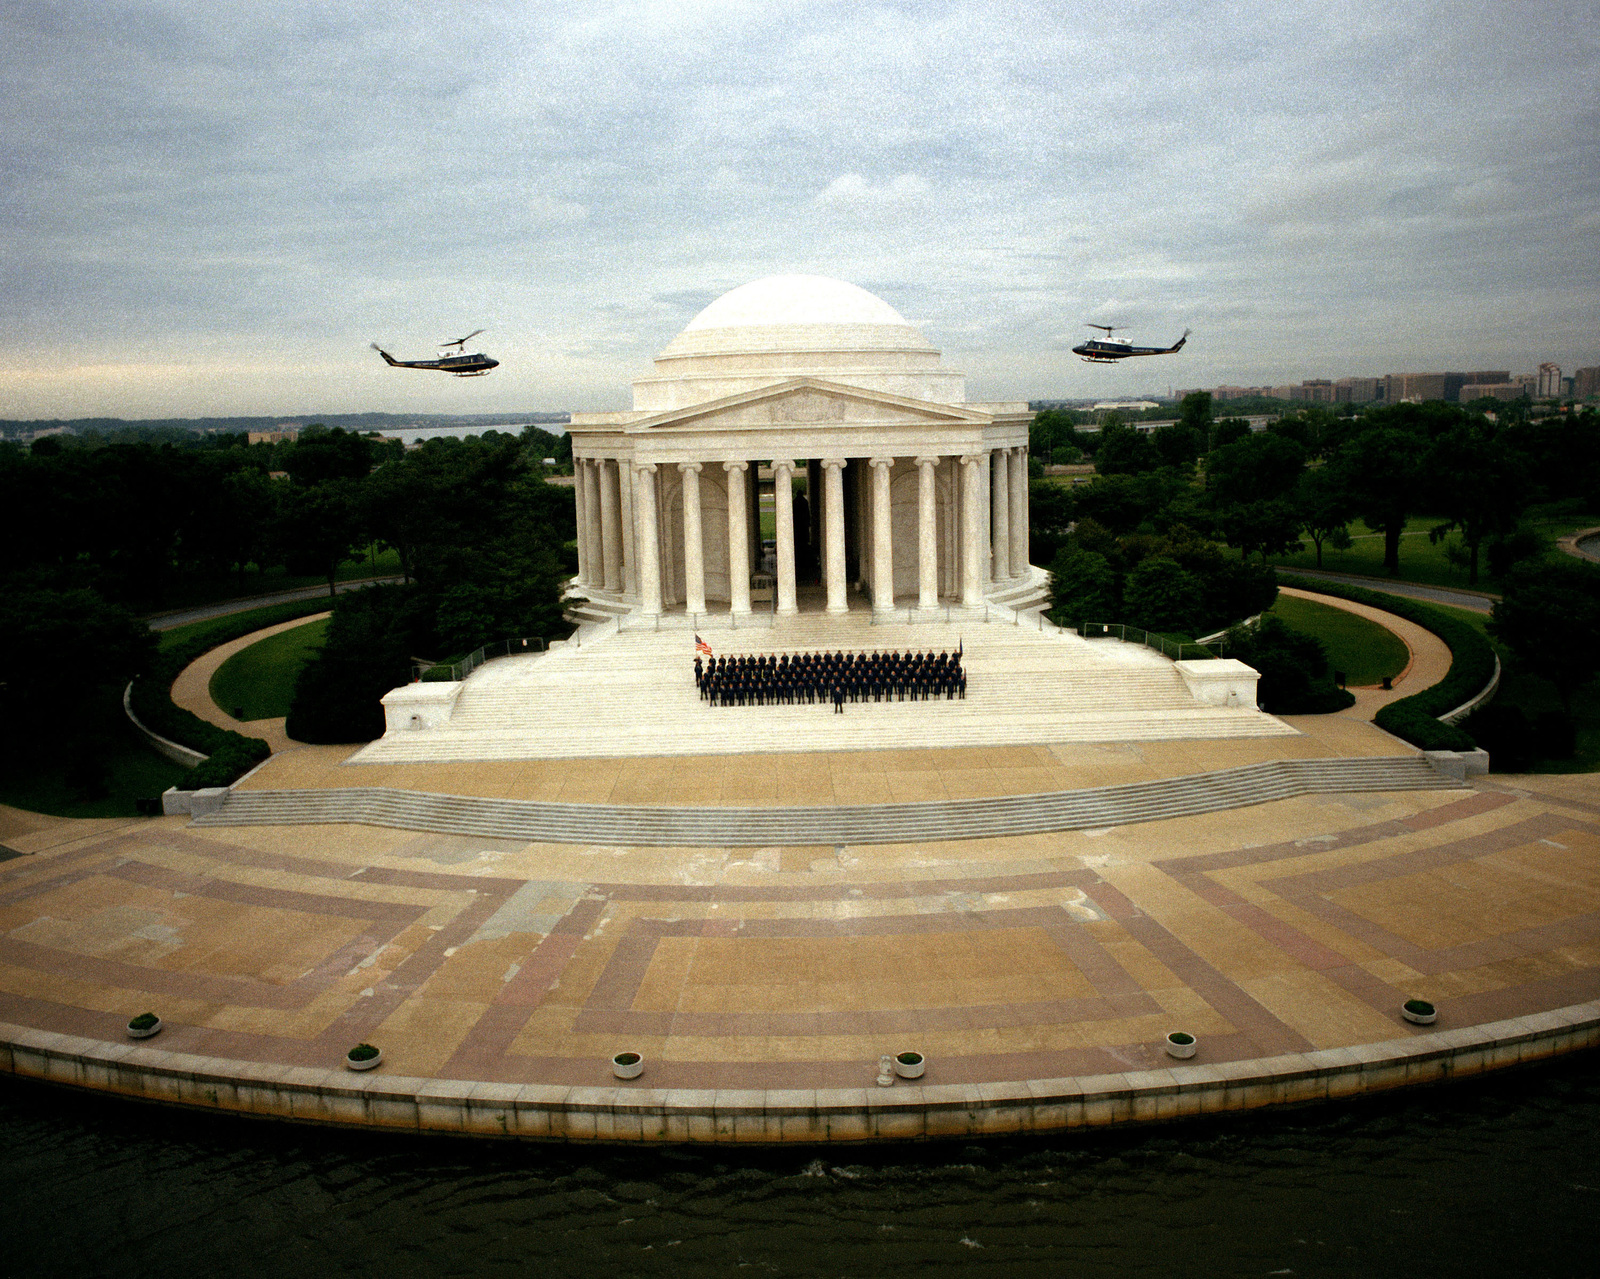 UH-1N Iroquois helicopters from the 1ST Helicopter Squadron hover above the Jefferson Memorial as members of the squadron gather on the monument's steps to celebrate their record of 150,000 accident free flight hours